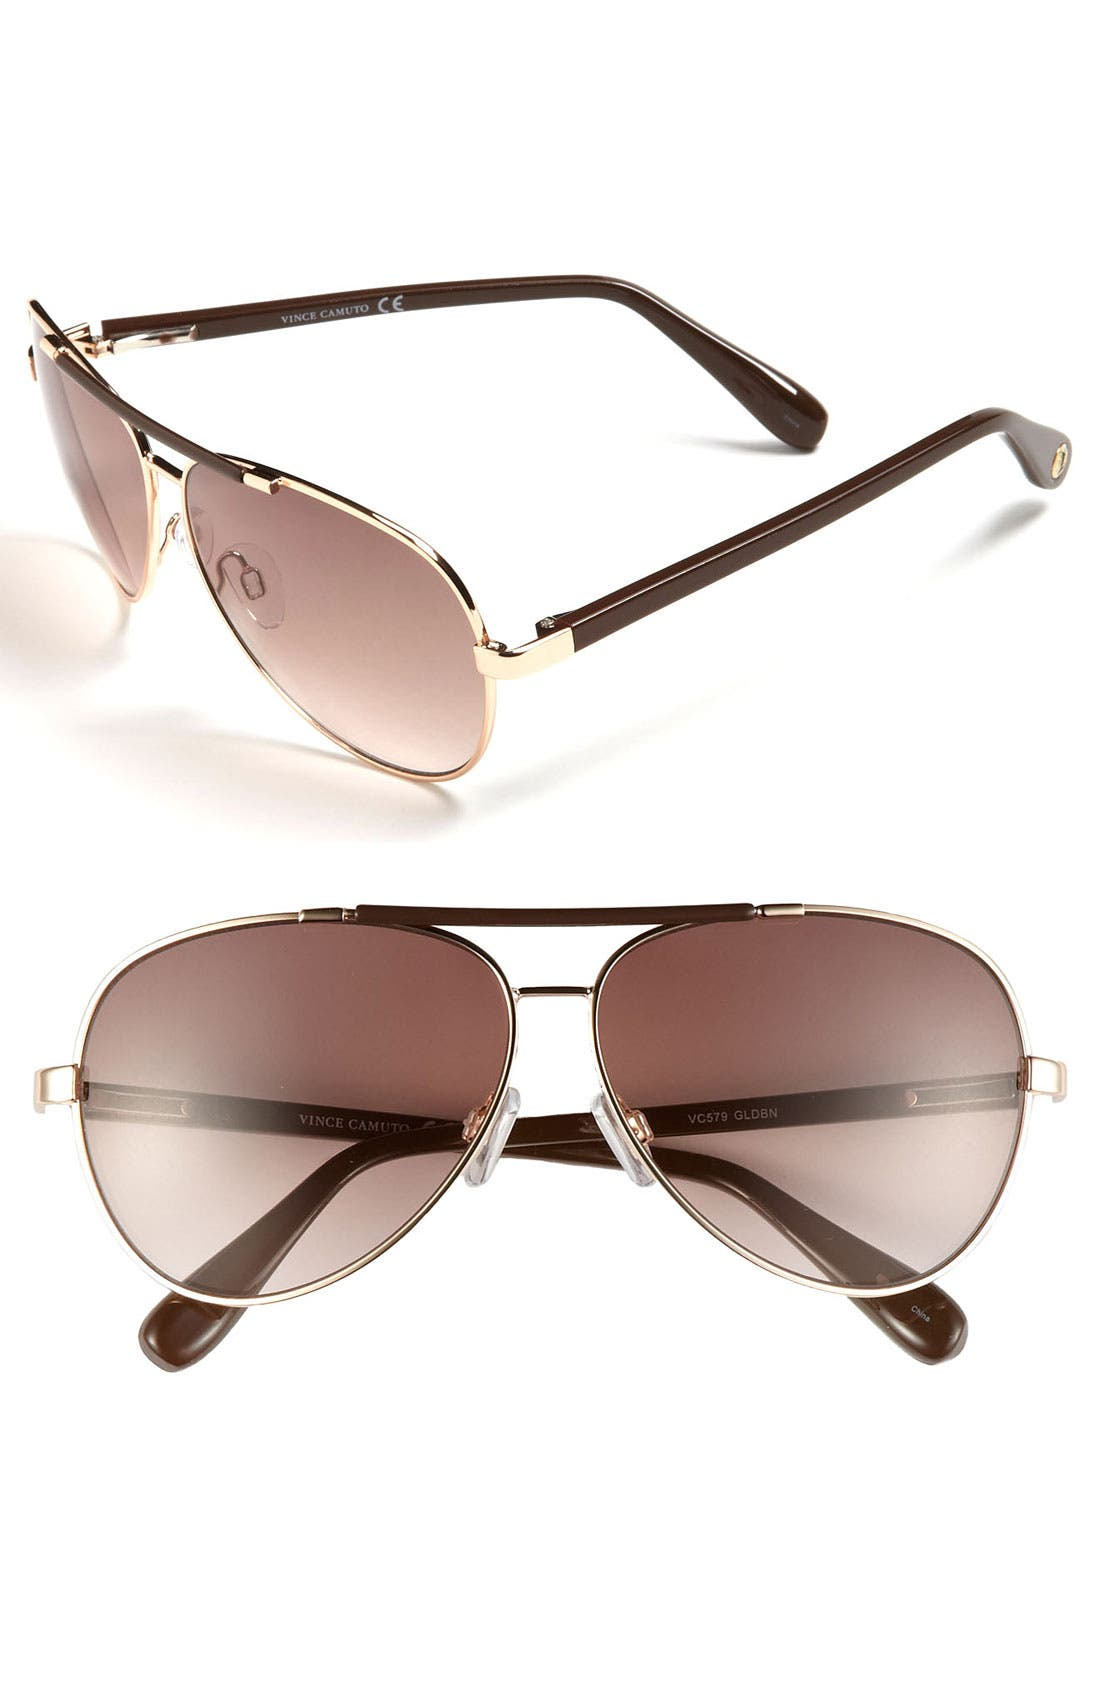 Alternate Image 1 Selected - Vince Camuto 60mm Aviator Sunglasses (Online Only)